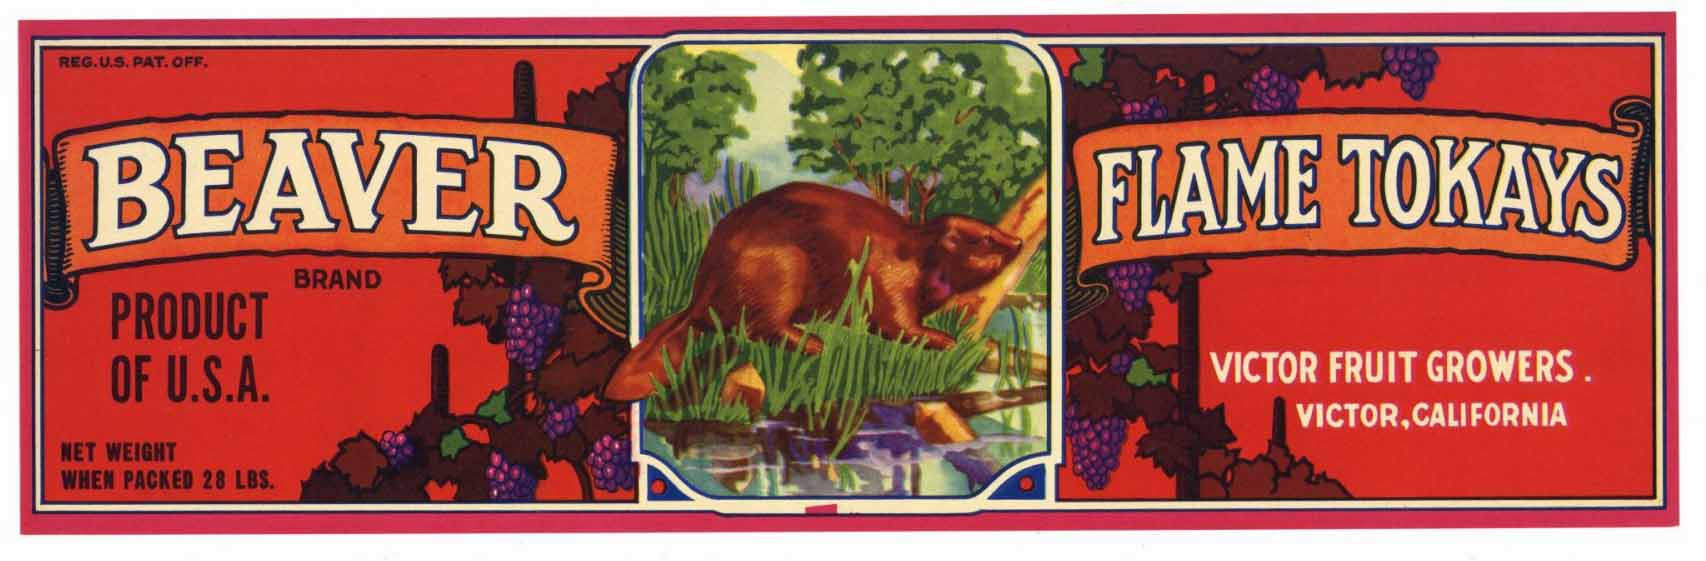 BEAVER Brand Vintage Grape Crate Label (LL138)